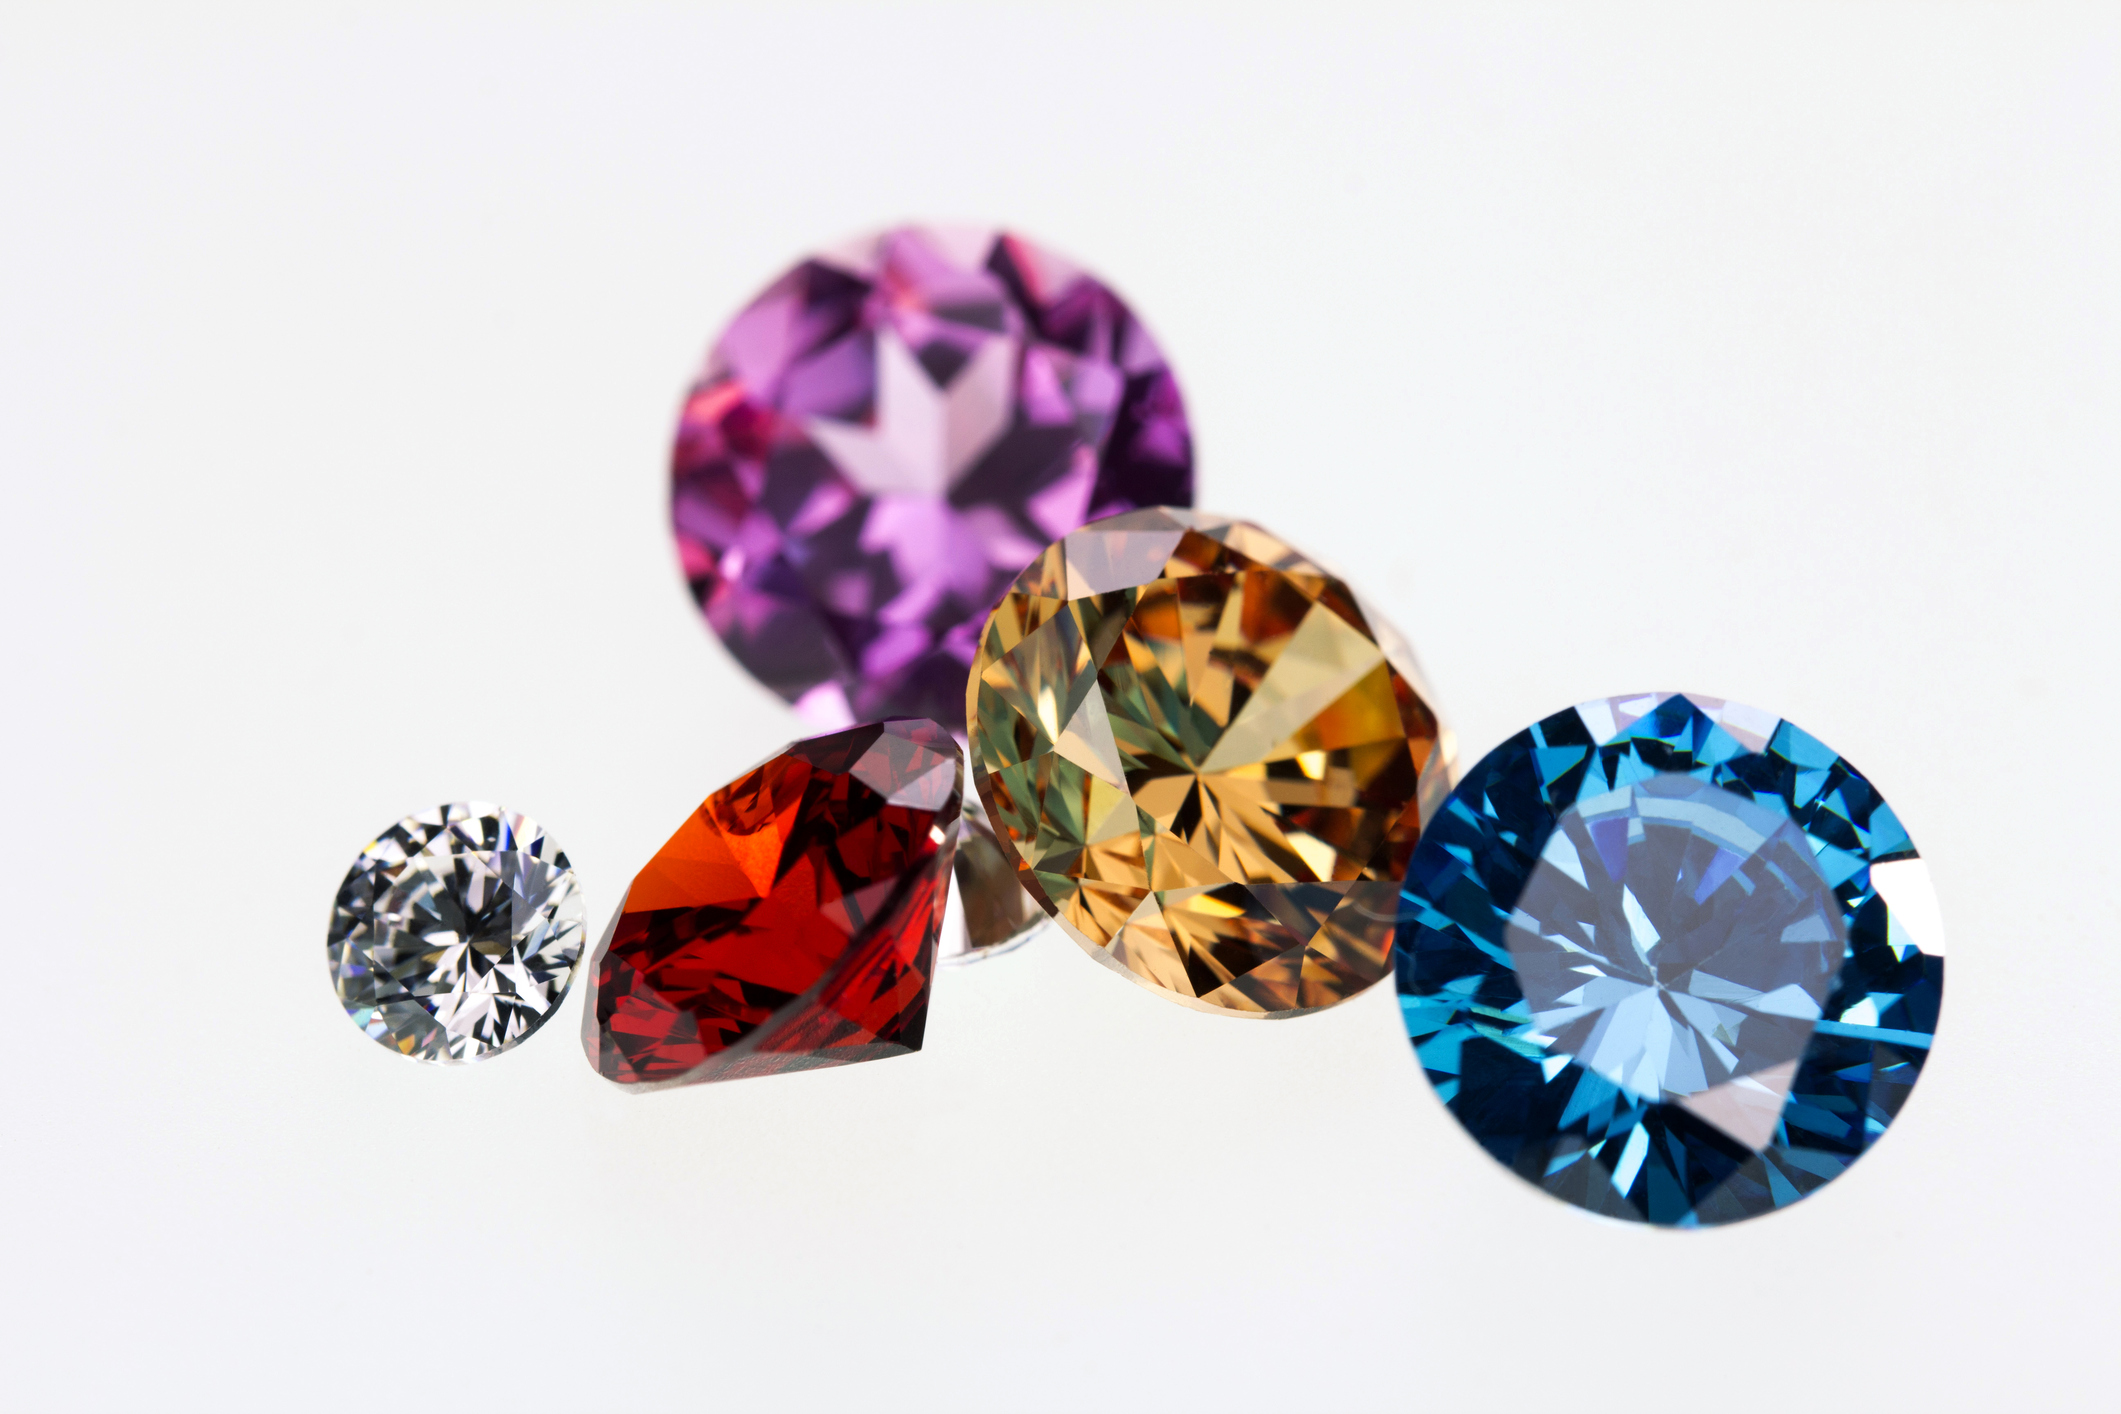 Colored Gemstones, Rubies and Sapphires Wholesale